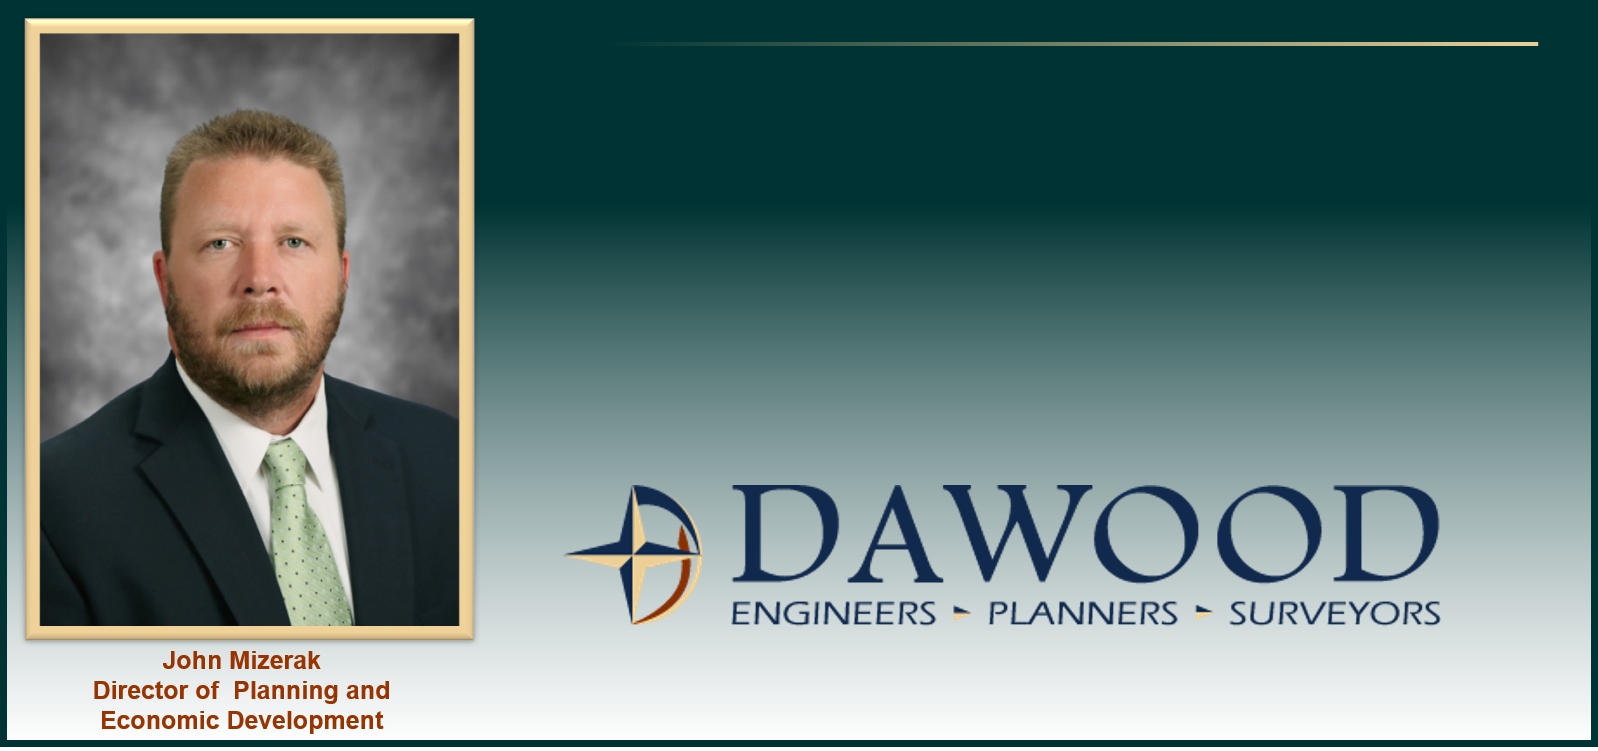 Dawood welcomes John Mizerak, Director of Planning and Economic Development